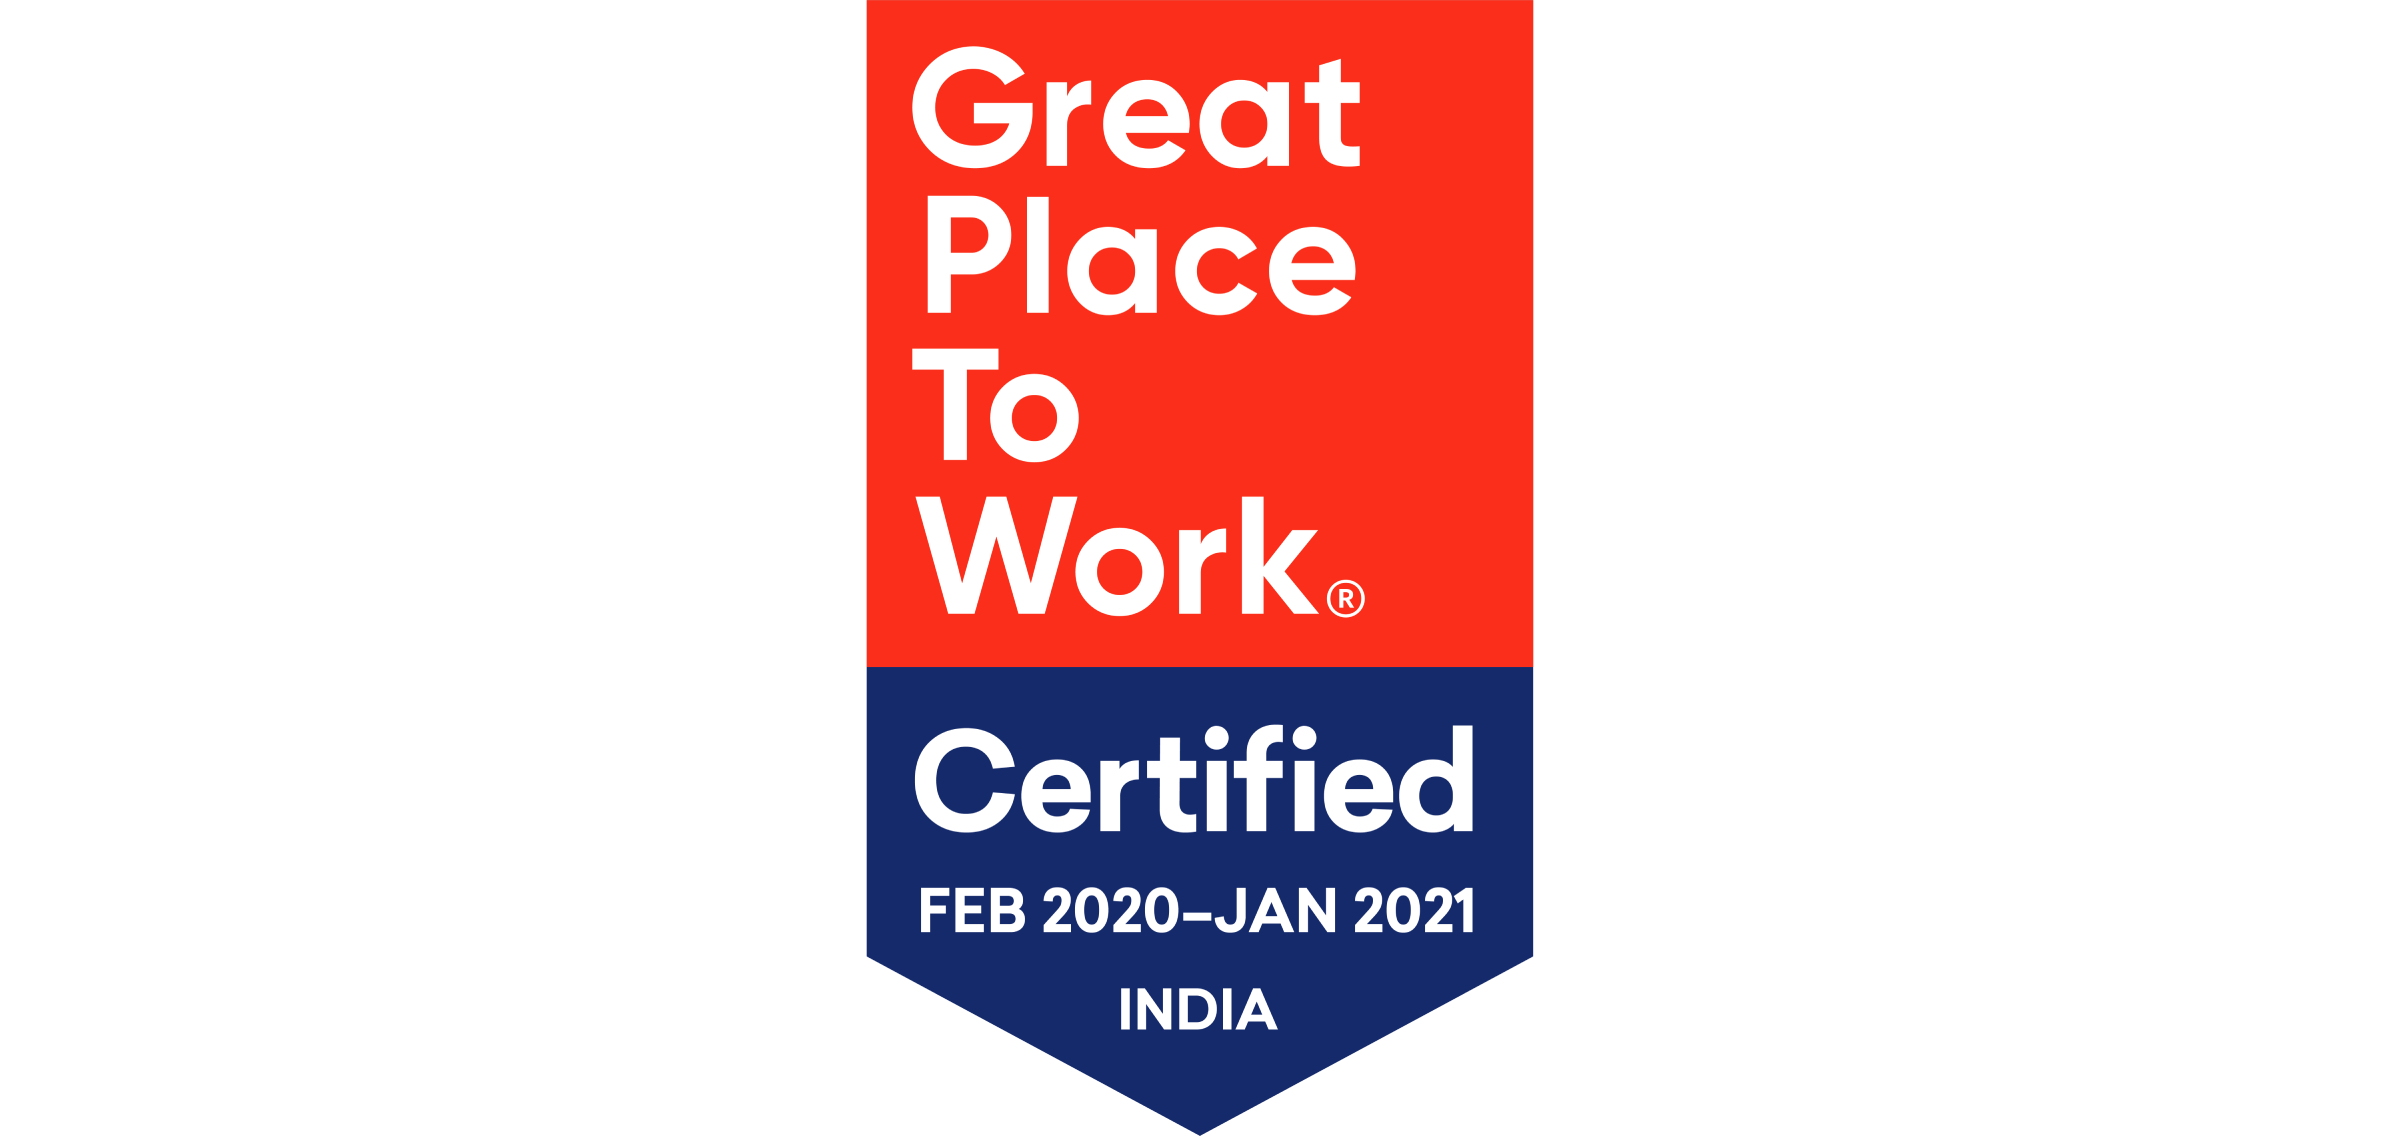 KellyOCG India has been Great Place to Work-CertifiedTM!